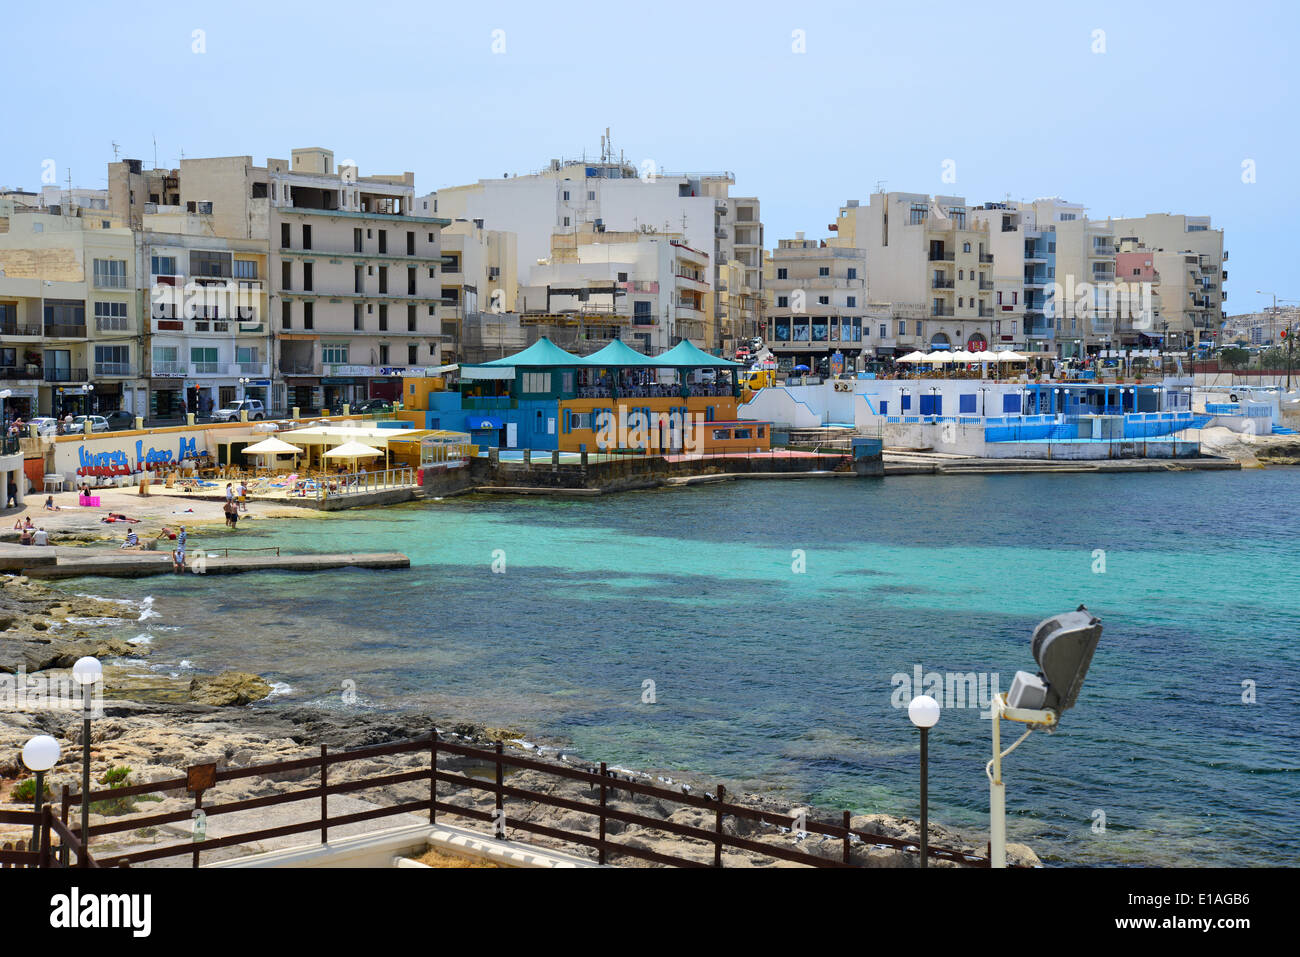 Seafront promenade, Buġibba, Saint Paul's Bay (San Pawl il-Baħar), Northern District, Republic of Malta - Stock Image